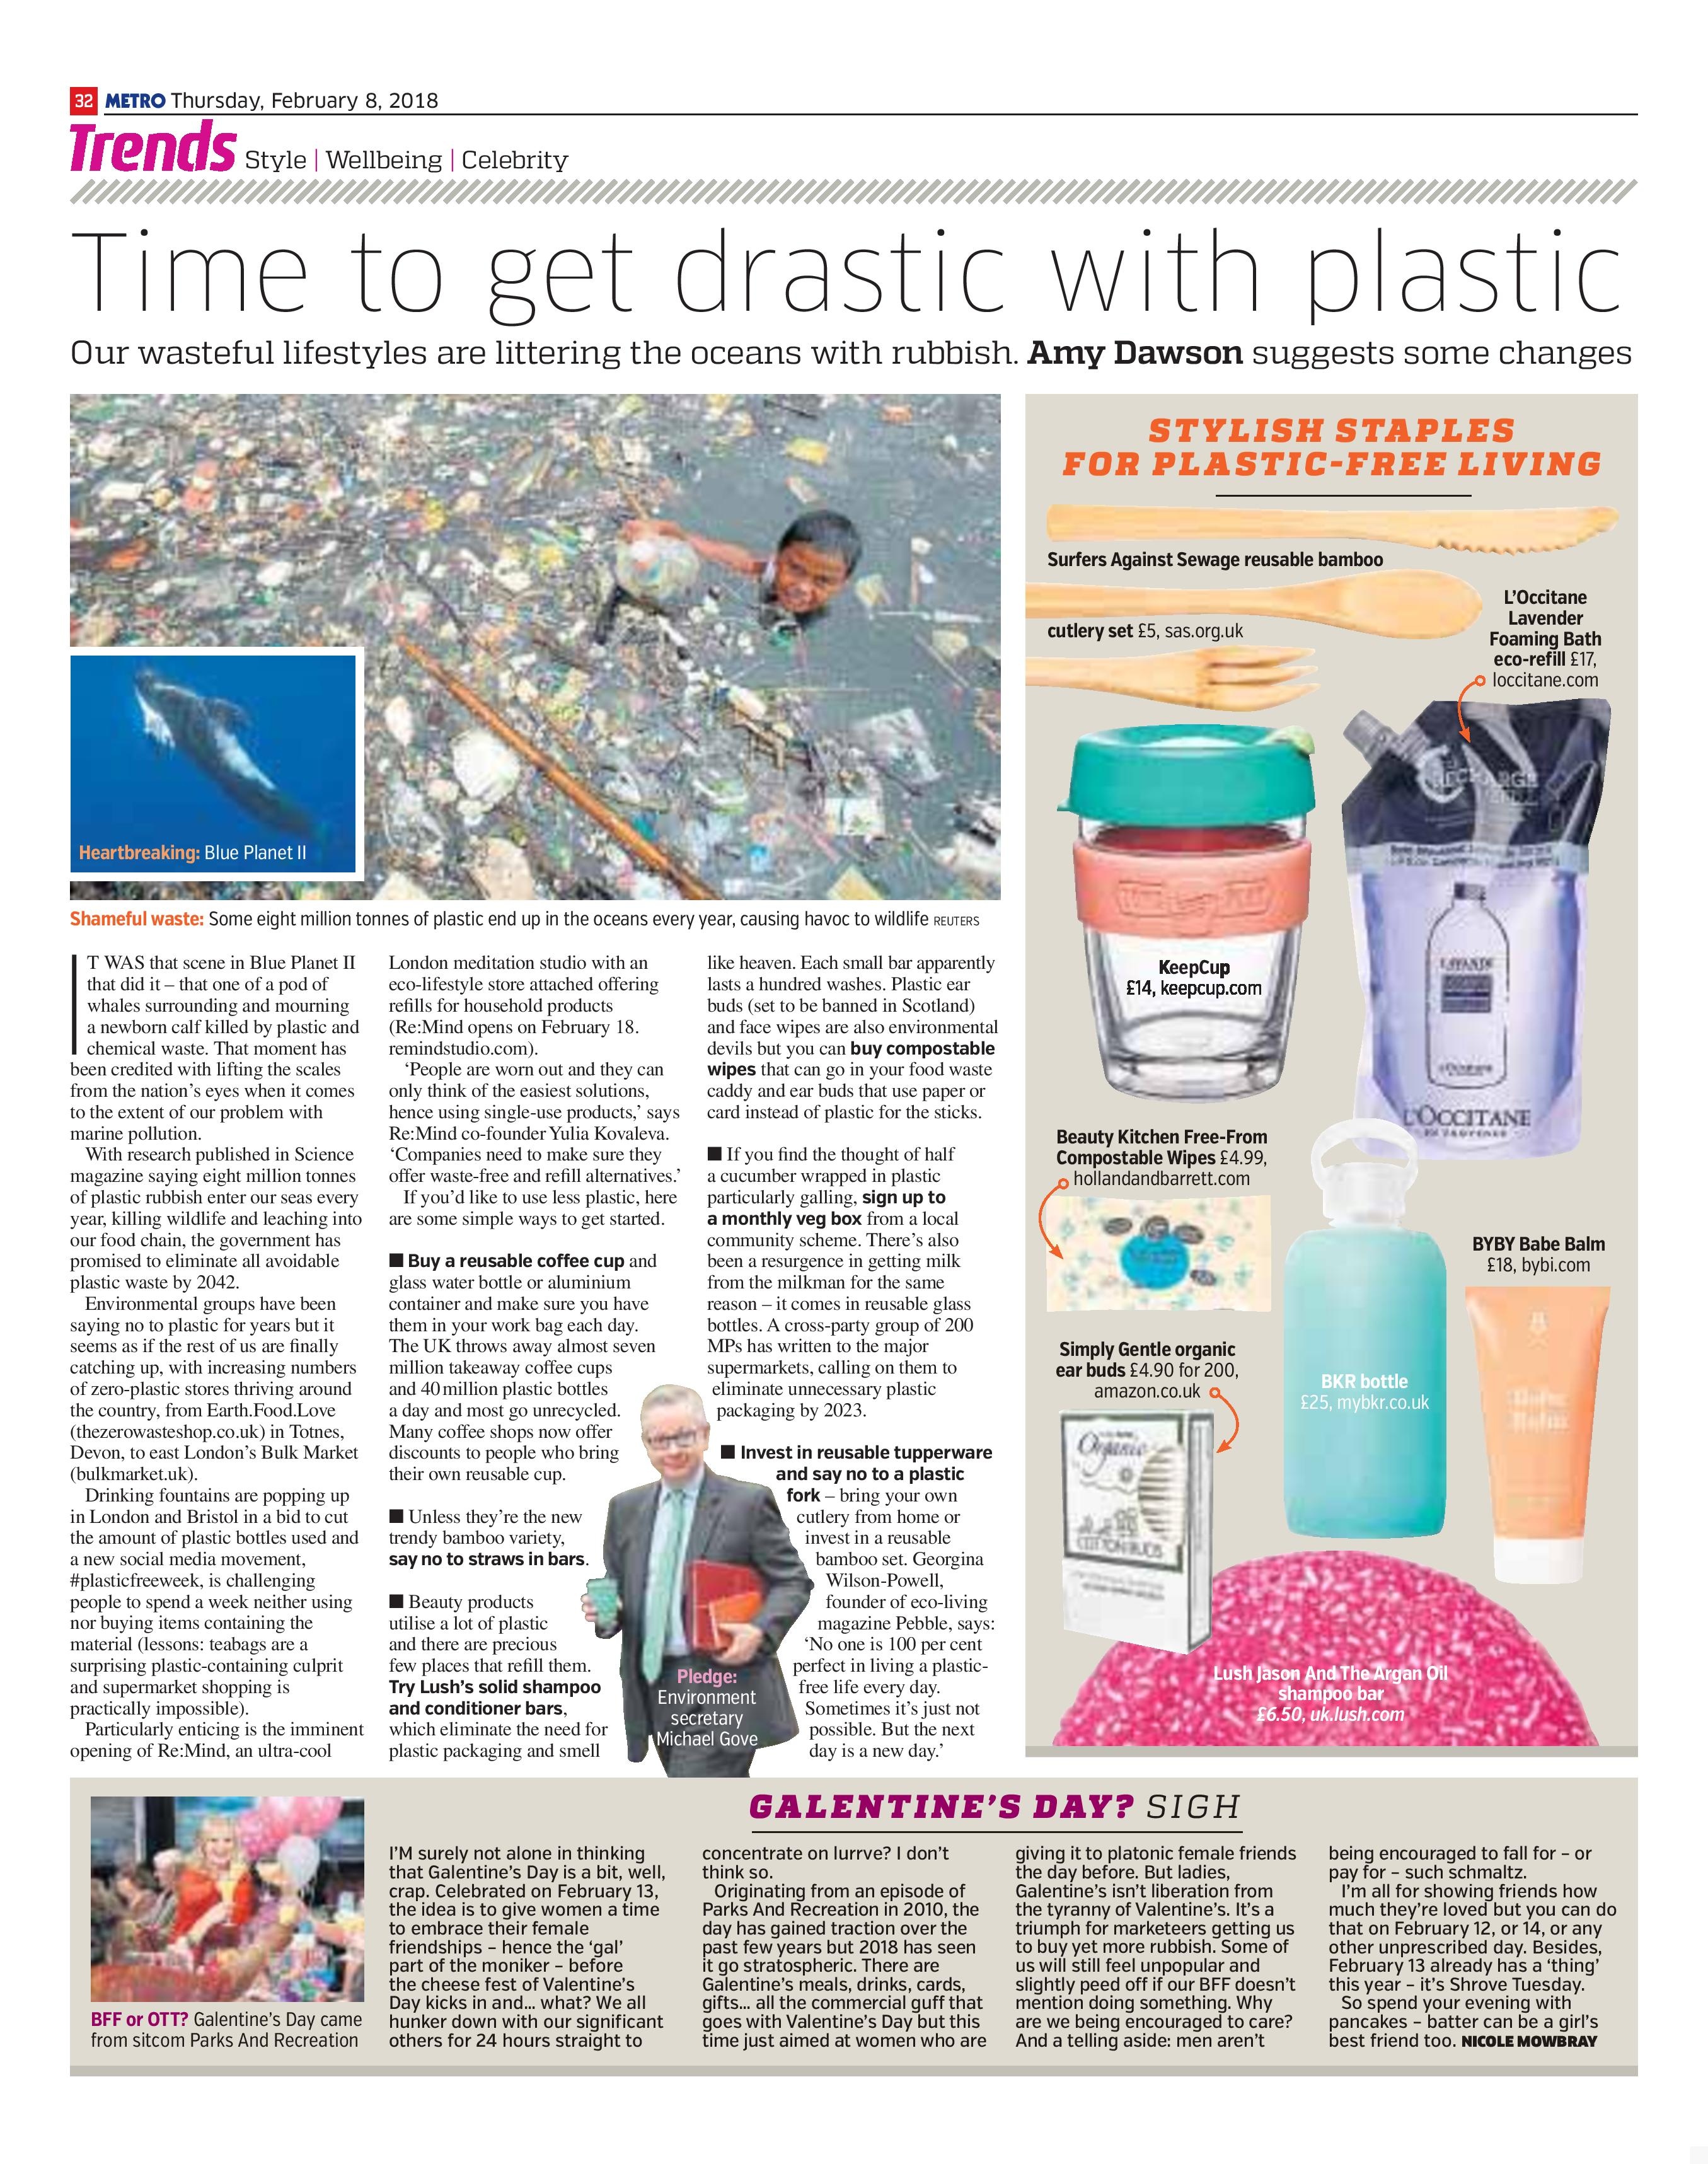 Time To Get Drastic With Plastic (Metro, 8th Feb 2018)